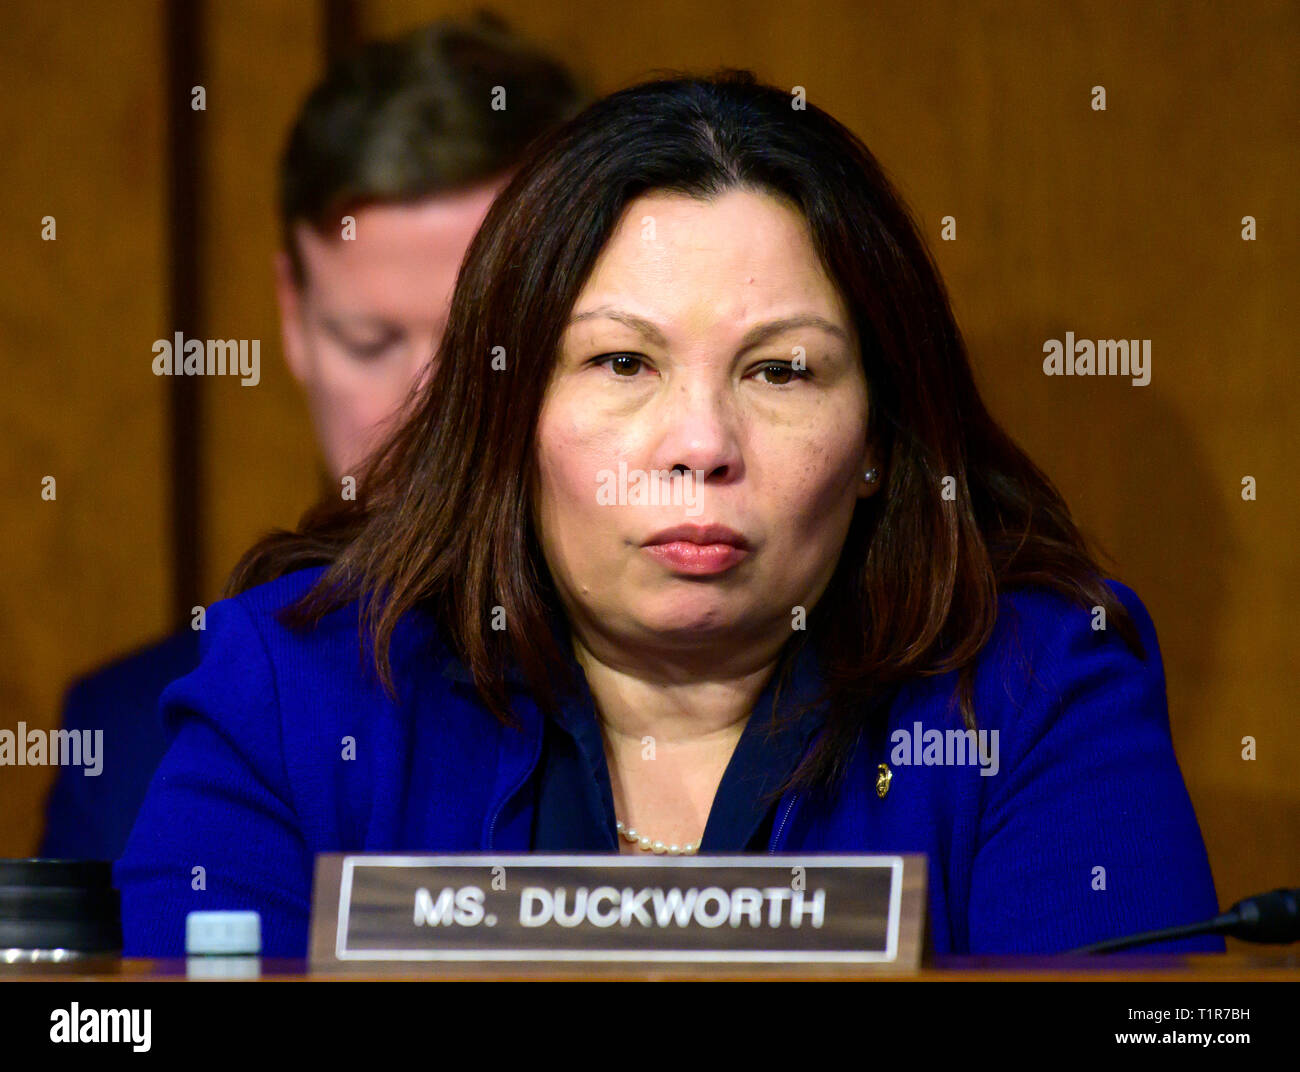 """Washington, United States Of America. 27th Mar, 2019. United States Senator Tammy Duckworth (Democrat of Illinois) listens to testimony before the US Senate Committee on Commerce, Science, and Transportation Subcommittee on Aviation and Space, during a hearing titled, """"The State of Airline Safety: Federal Oversight of Commercial Aviation"""" to examine problems with the Boeing 737 Max aircraft highlighted by the two recent fatal accidents. Credit: Ron Sachs/CNP 